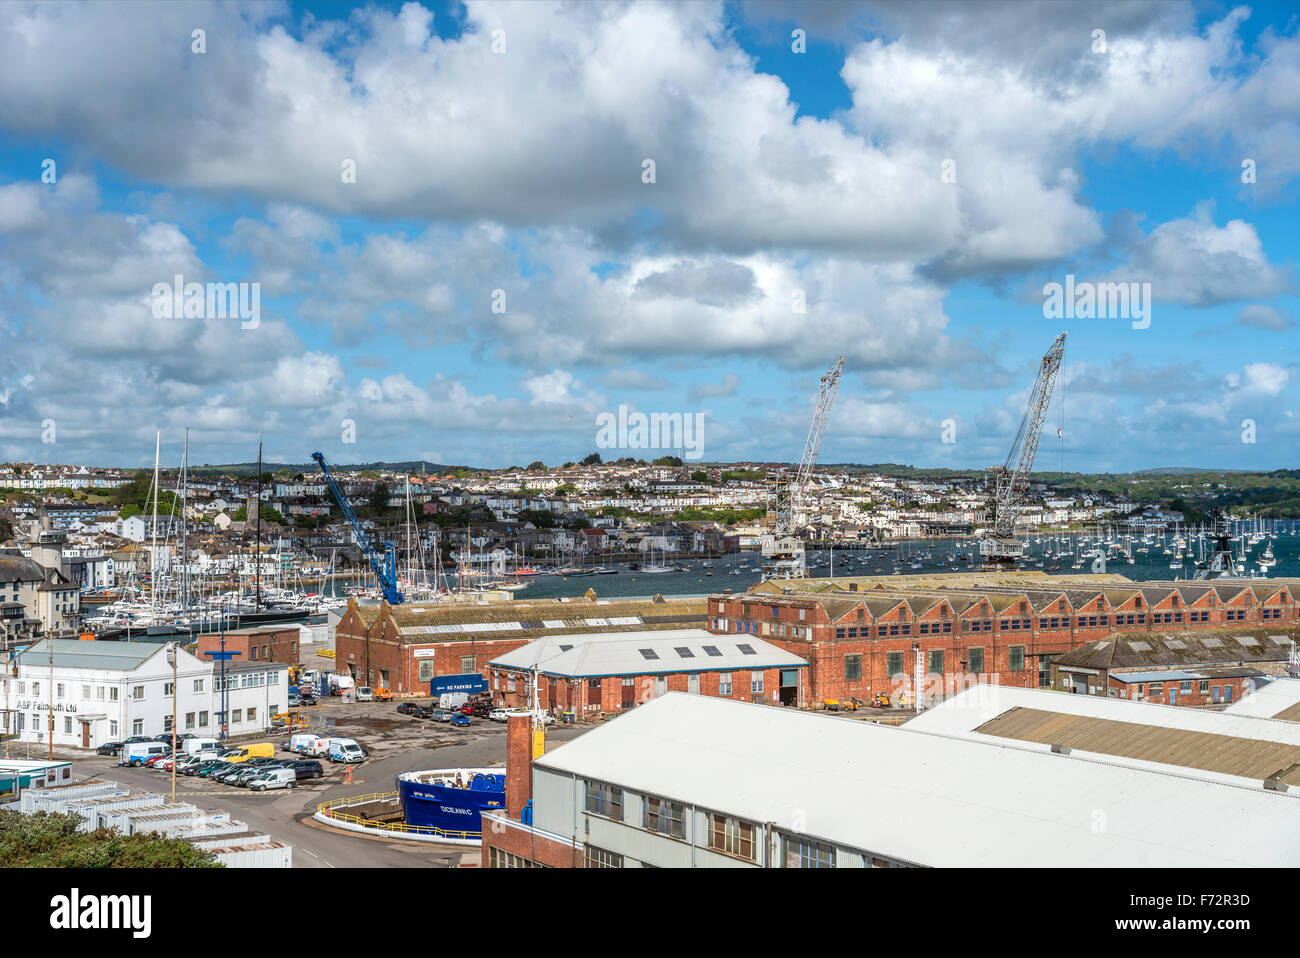 Elevated view over Falmouth Docks Area, Cornwall, England, UK - Stock Image